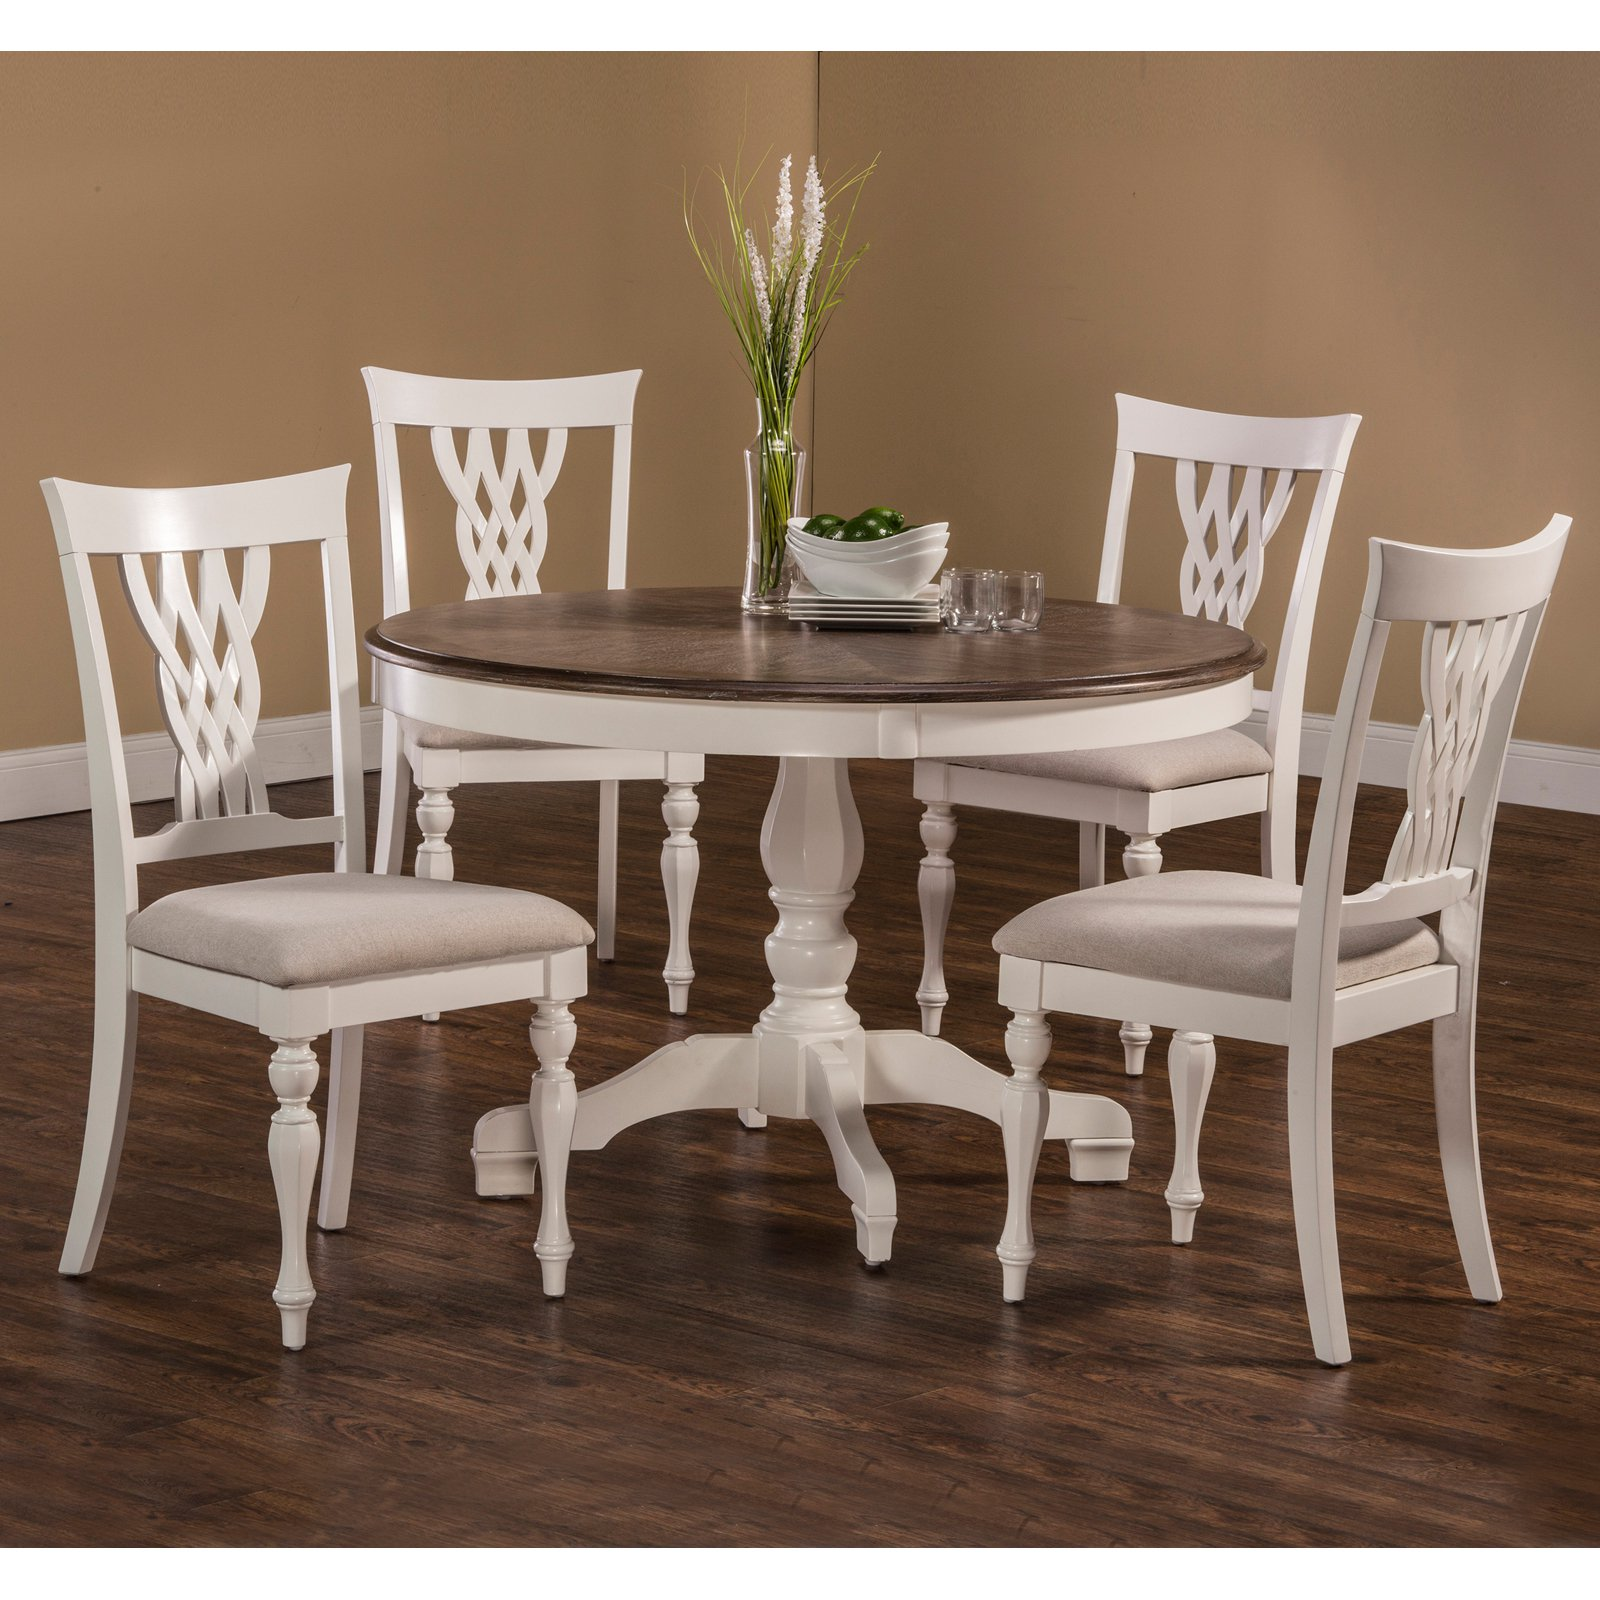 Hillsdale Furniture Bayberry 5-Piece Round Dining Room Set, White by Hillsdale